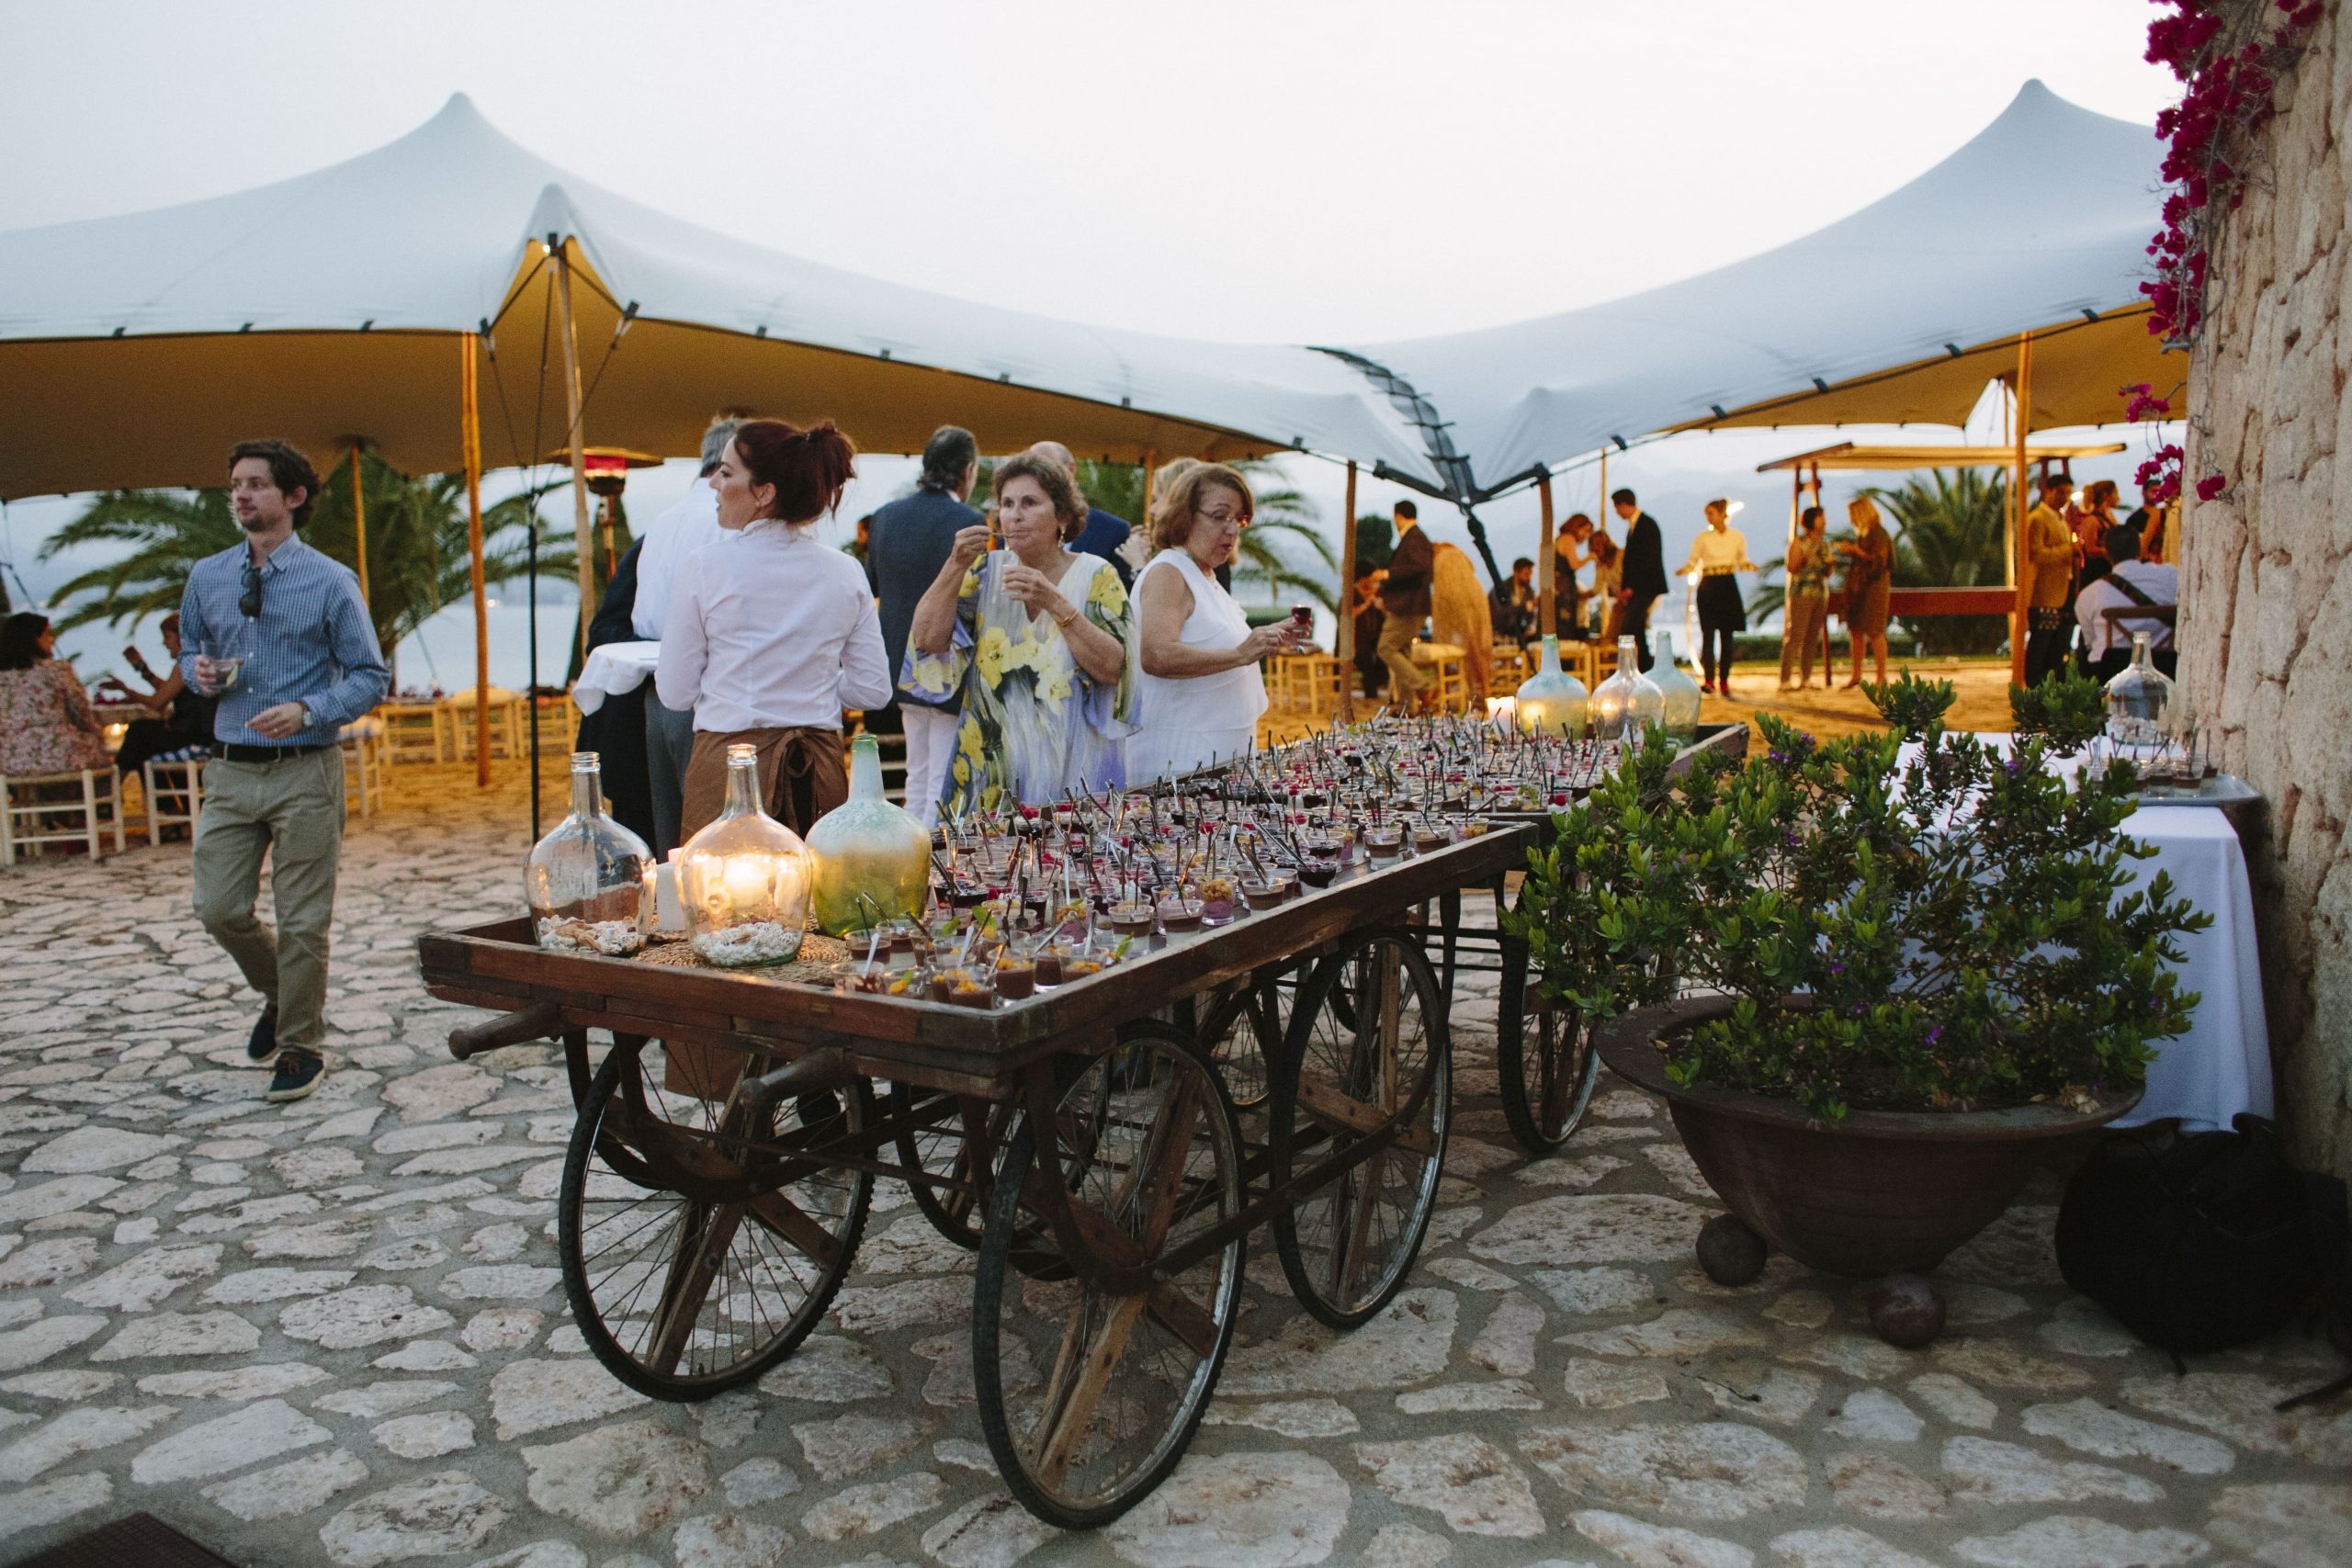 I want to do an event in Mallorca